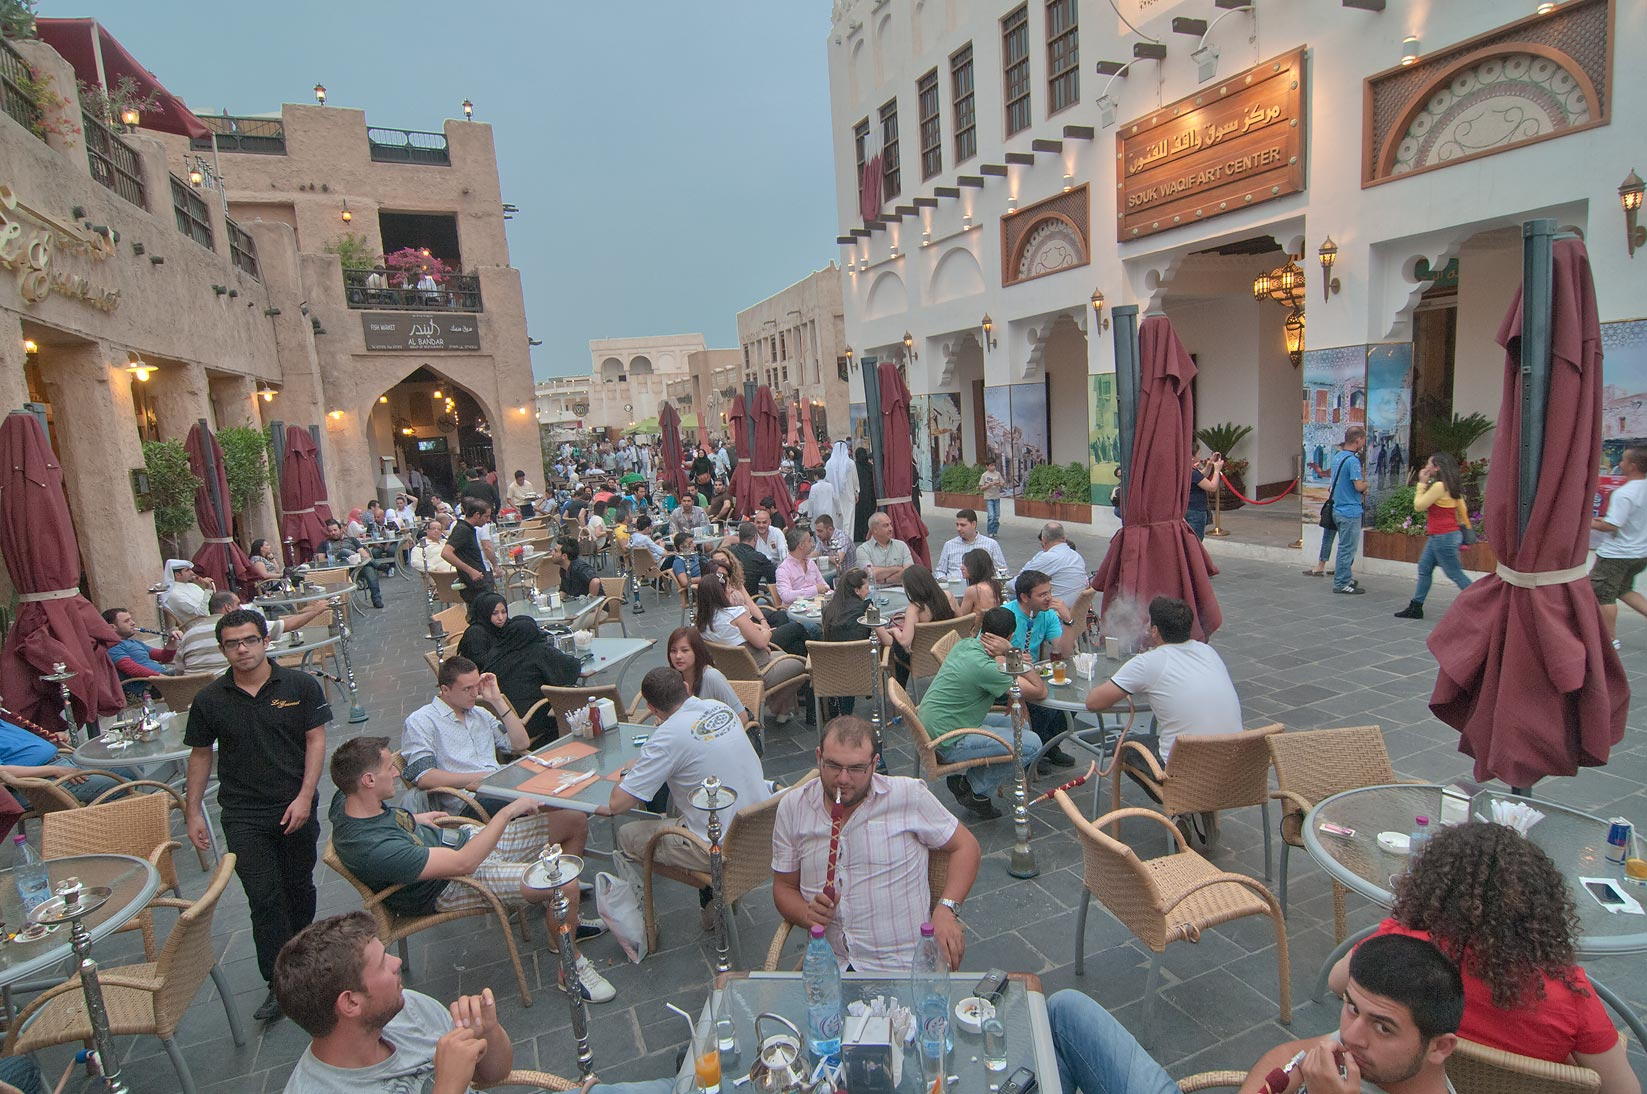 Weekend crowds on Friday evening in Souq Waqif (Old Market). Doha, Qatar